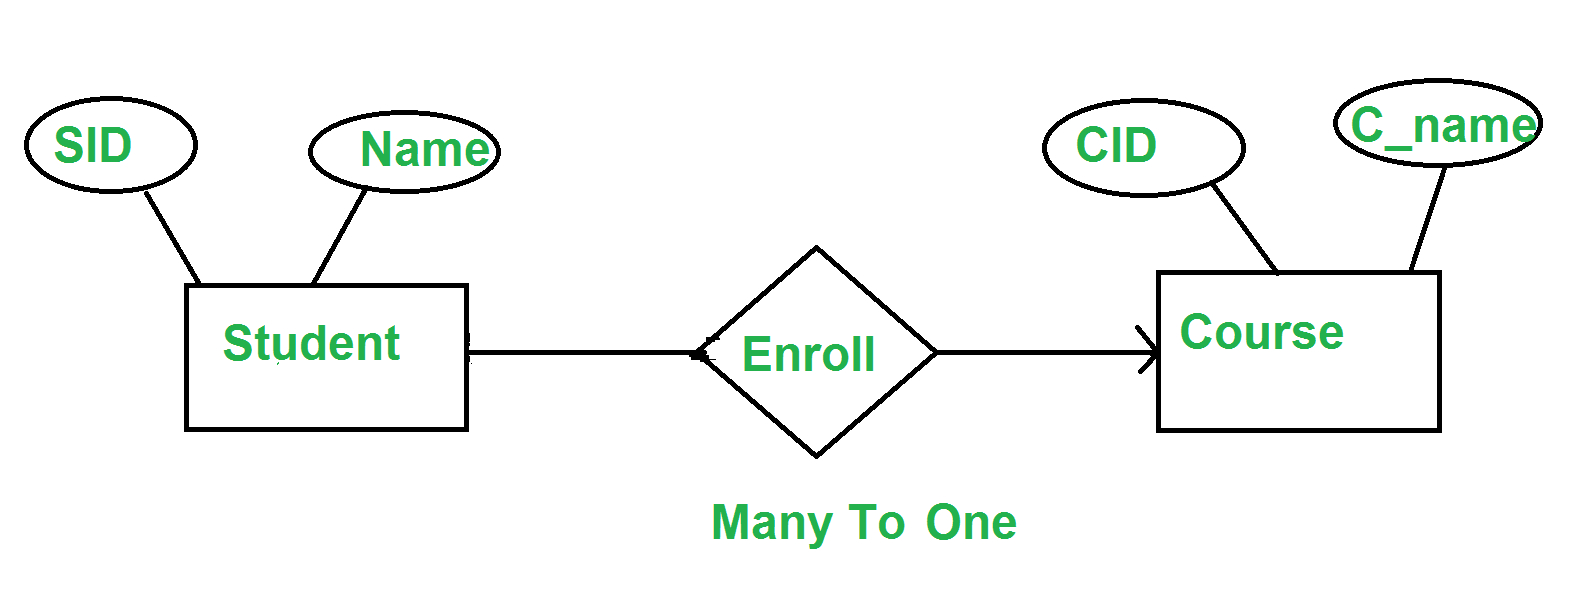 Minimization Of Er Diagrams - Geeksforgeeks intended for Er Diagram Gate Questions